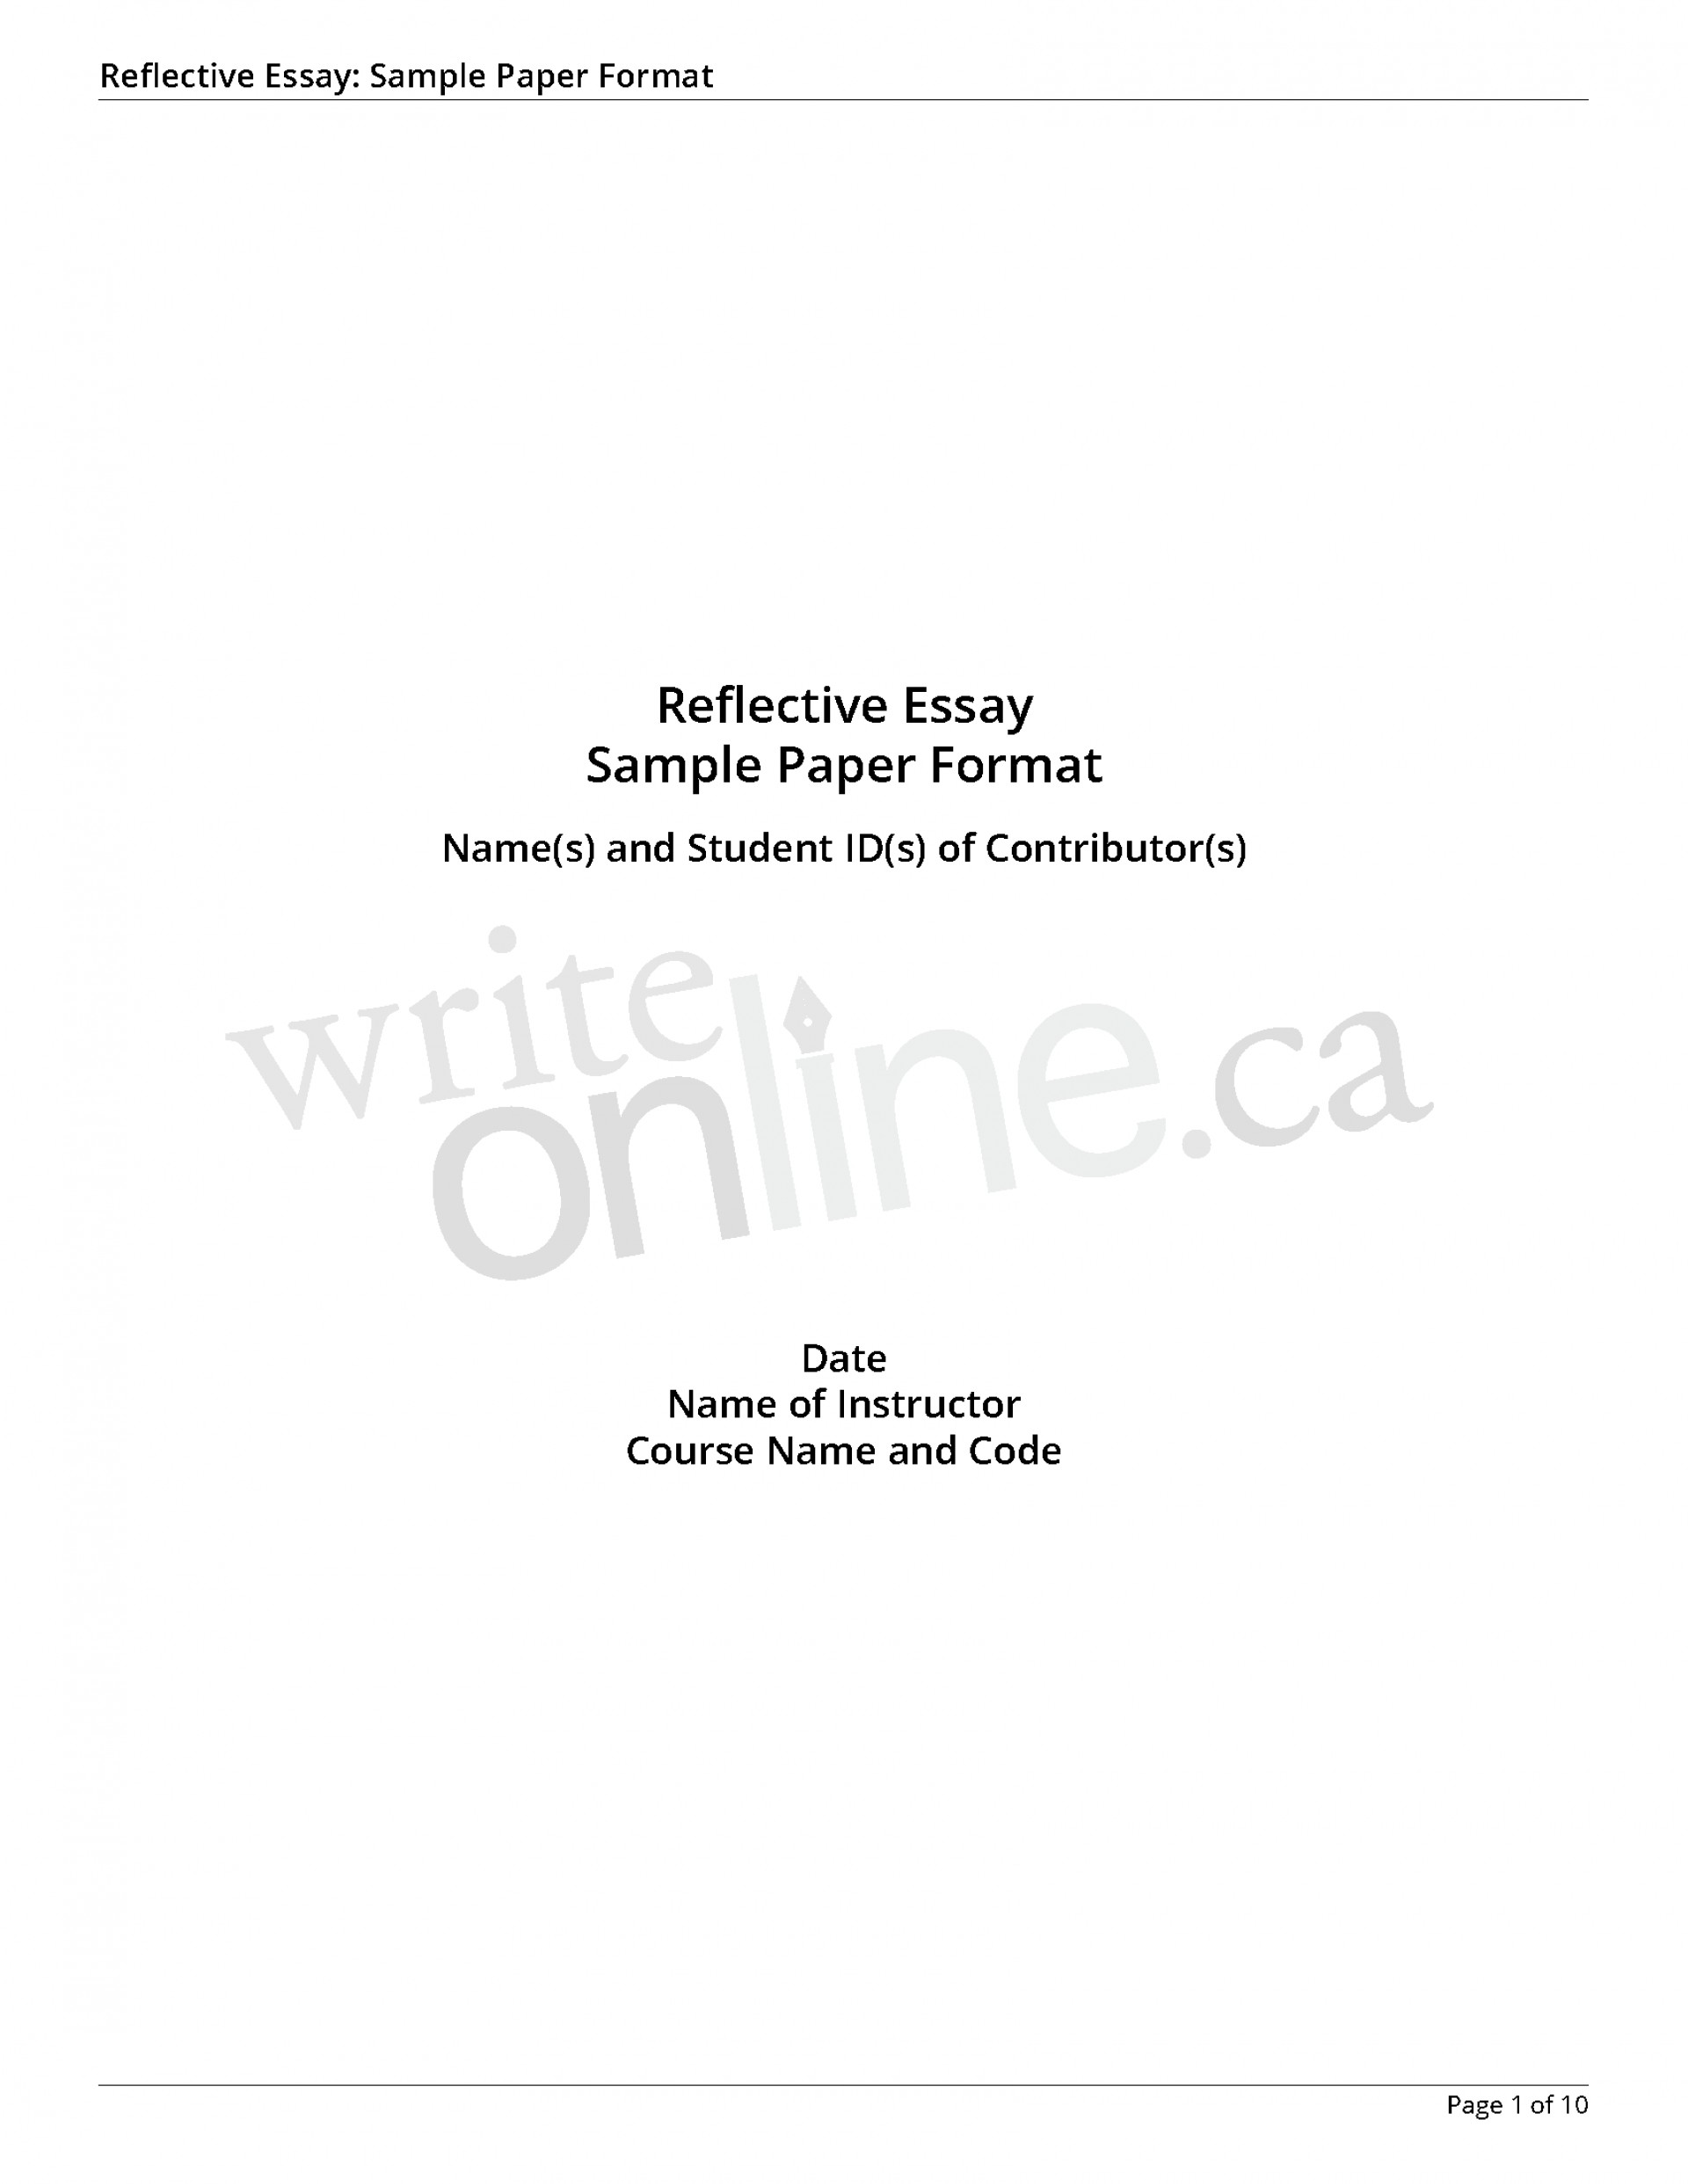 014 Reflectiveessay Sample Page 1 How To Write Reflective Essay Marvelous A Introduction Example On Book Do You 1920